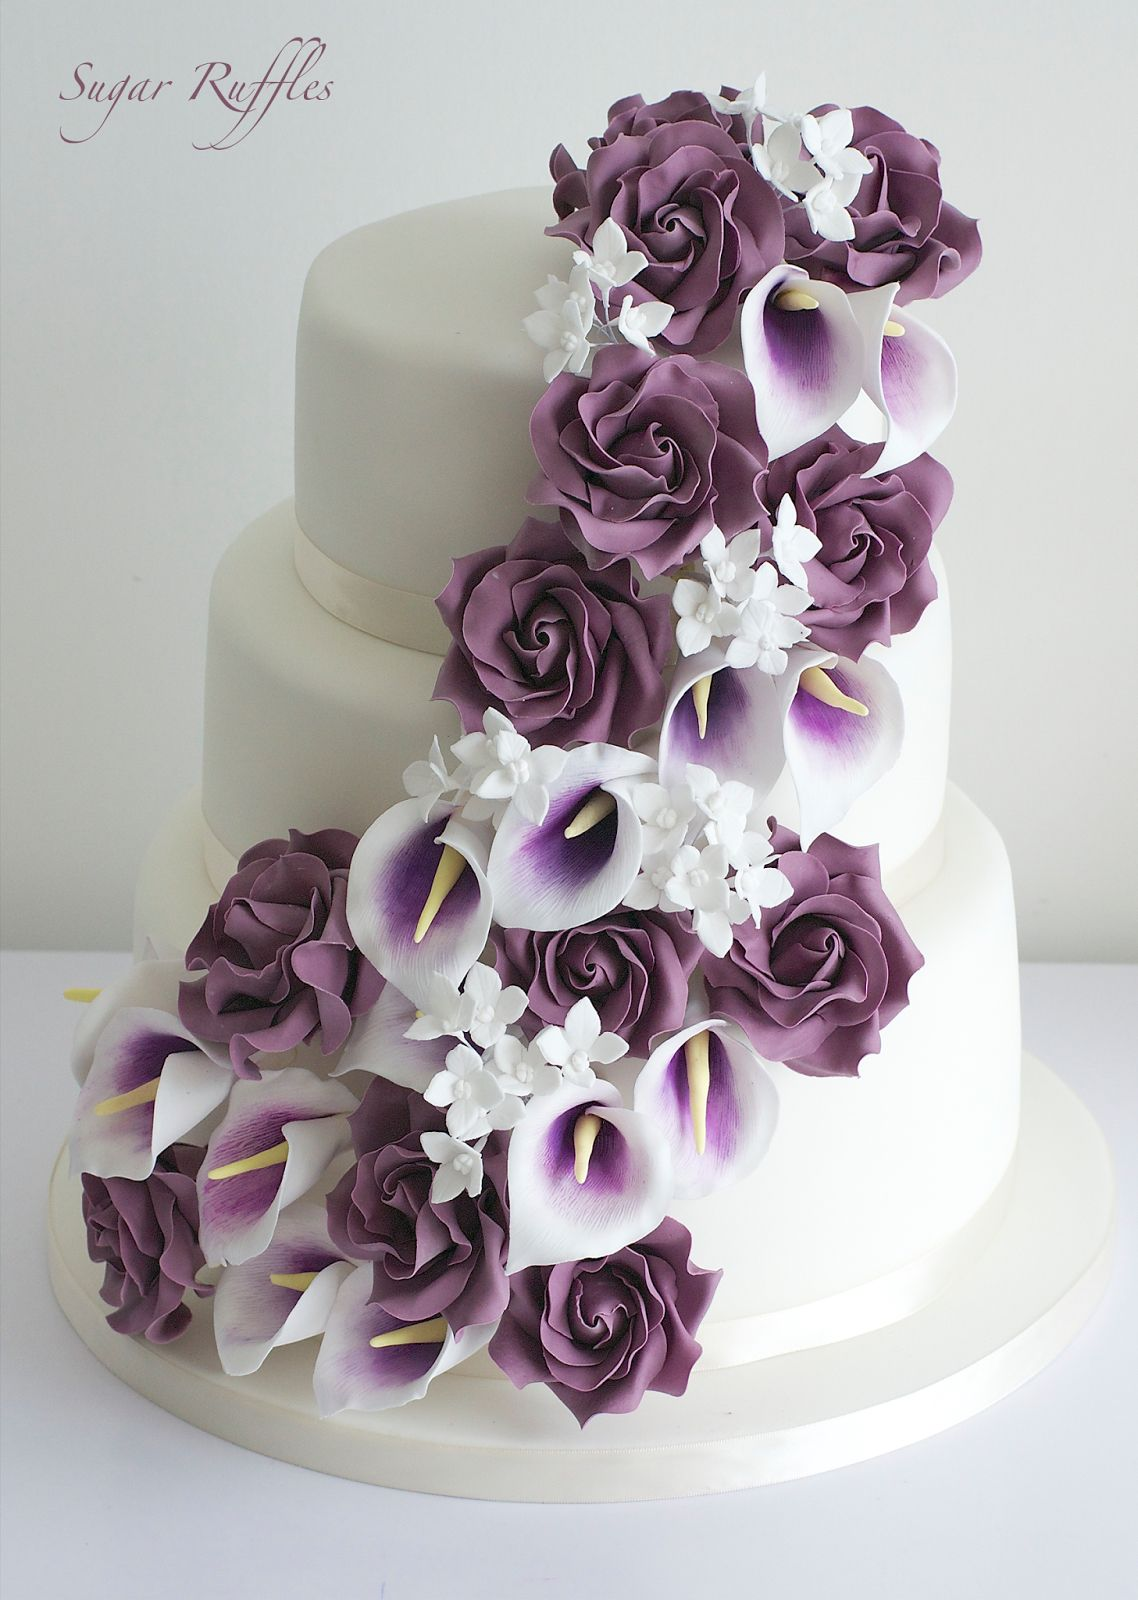 Pin By Vanessa Stalets On Wedding Ideas Purple Wedding Cakes